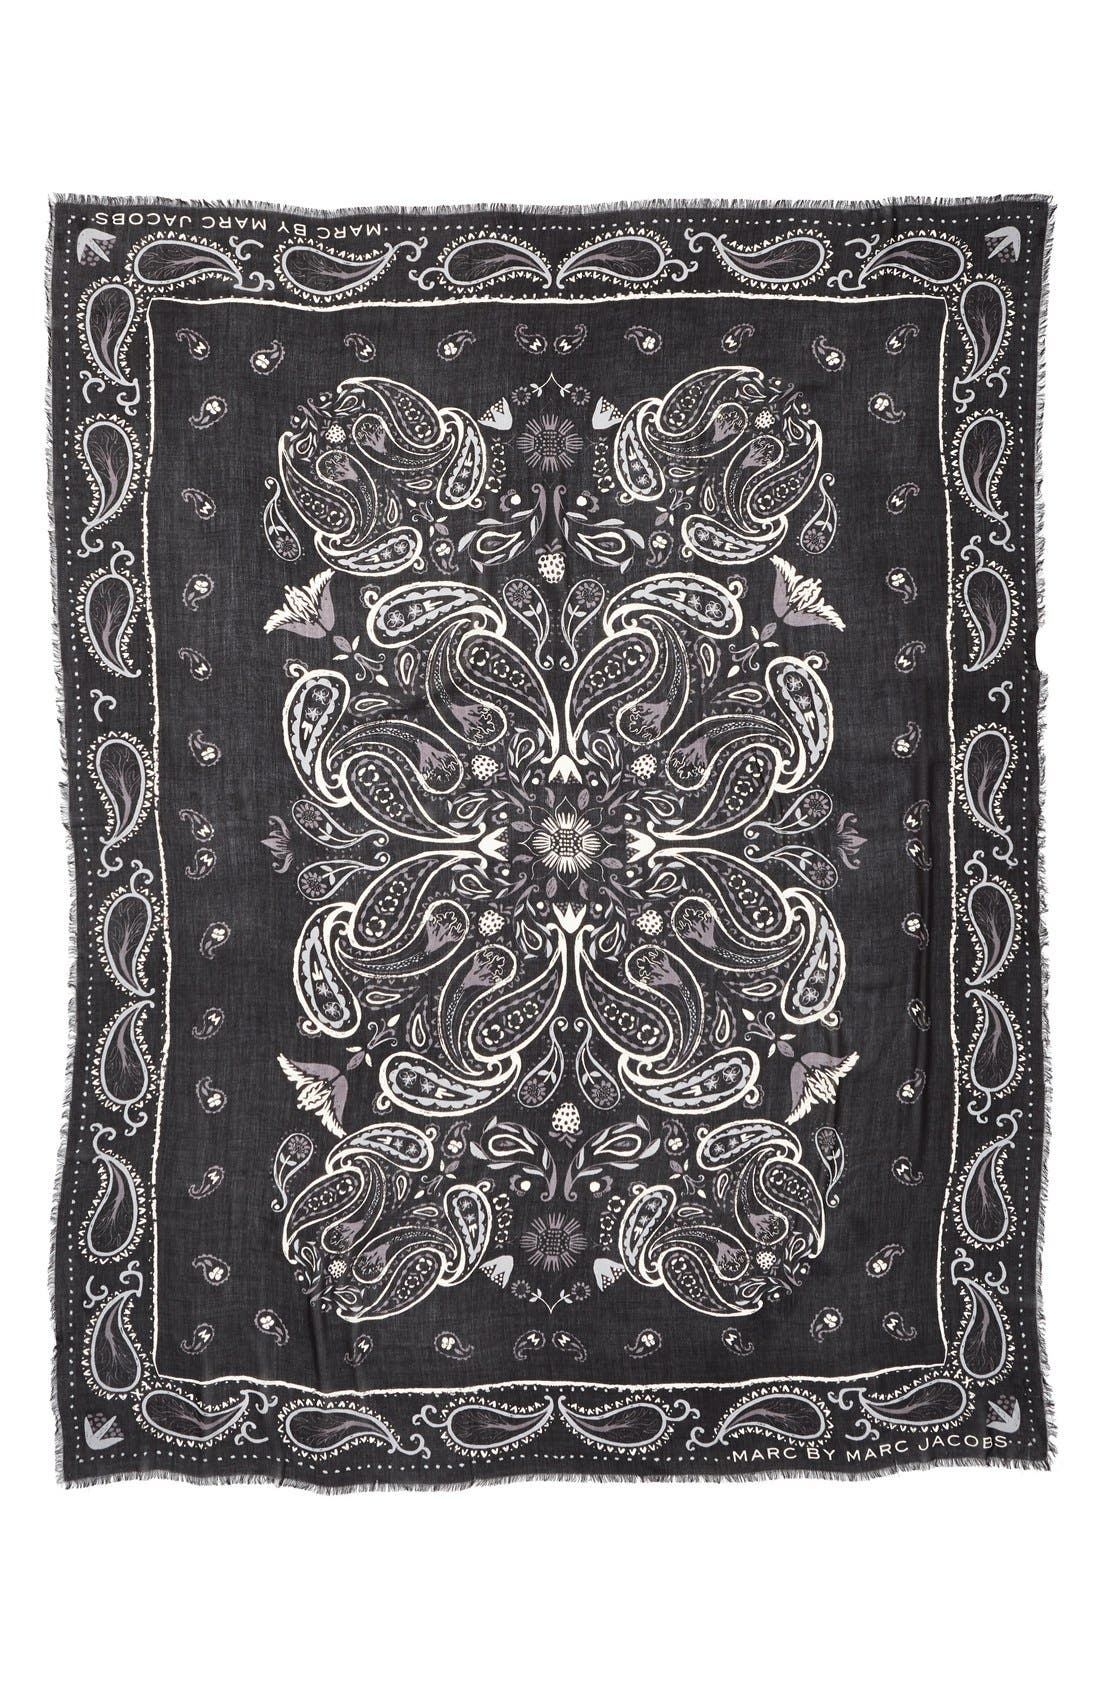 MARC JACOBS, MARC BY MARC JACOBS 'William' Paisley PrintScarf, Alternate thumbnail 4, color, 001